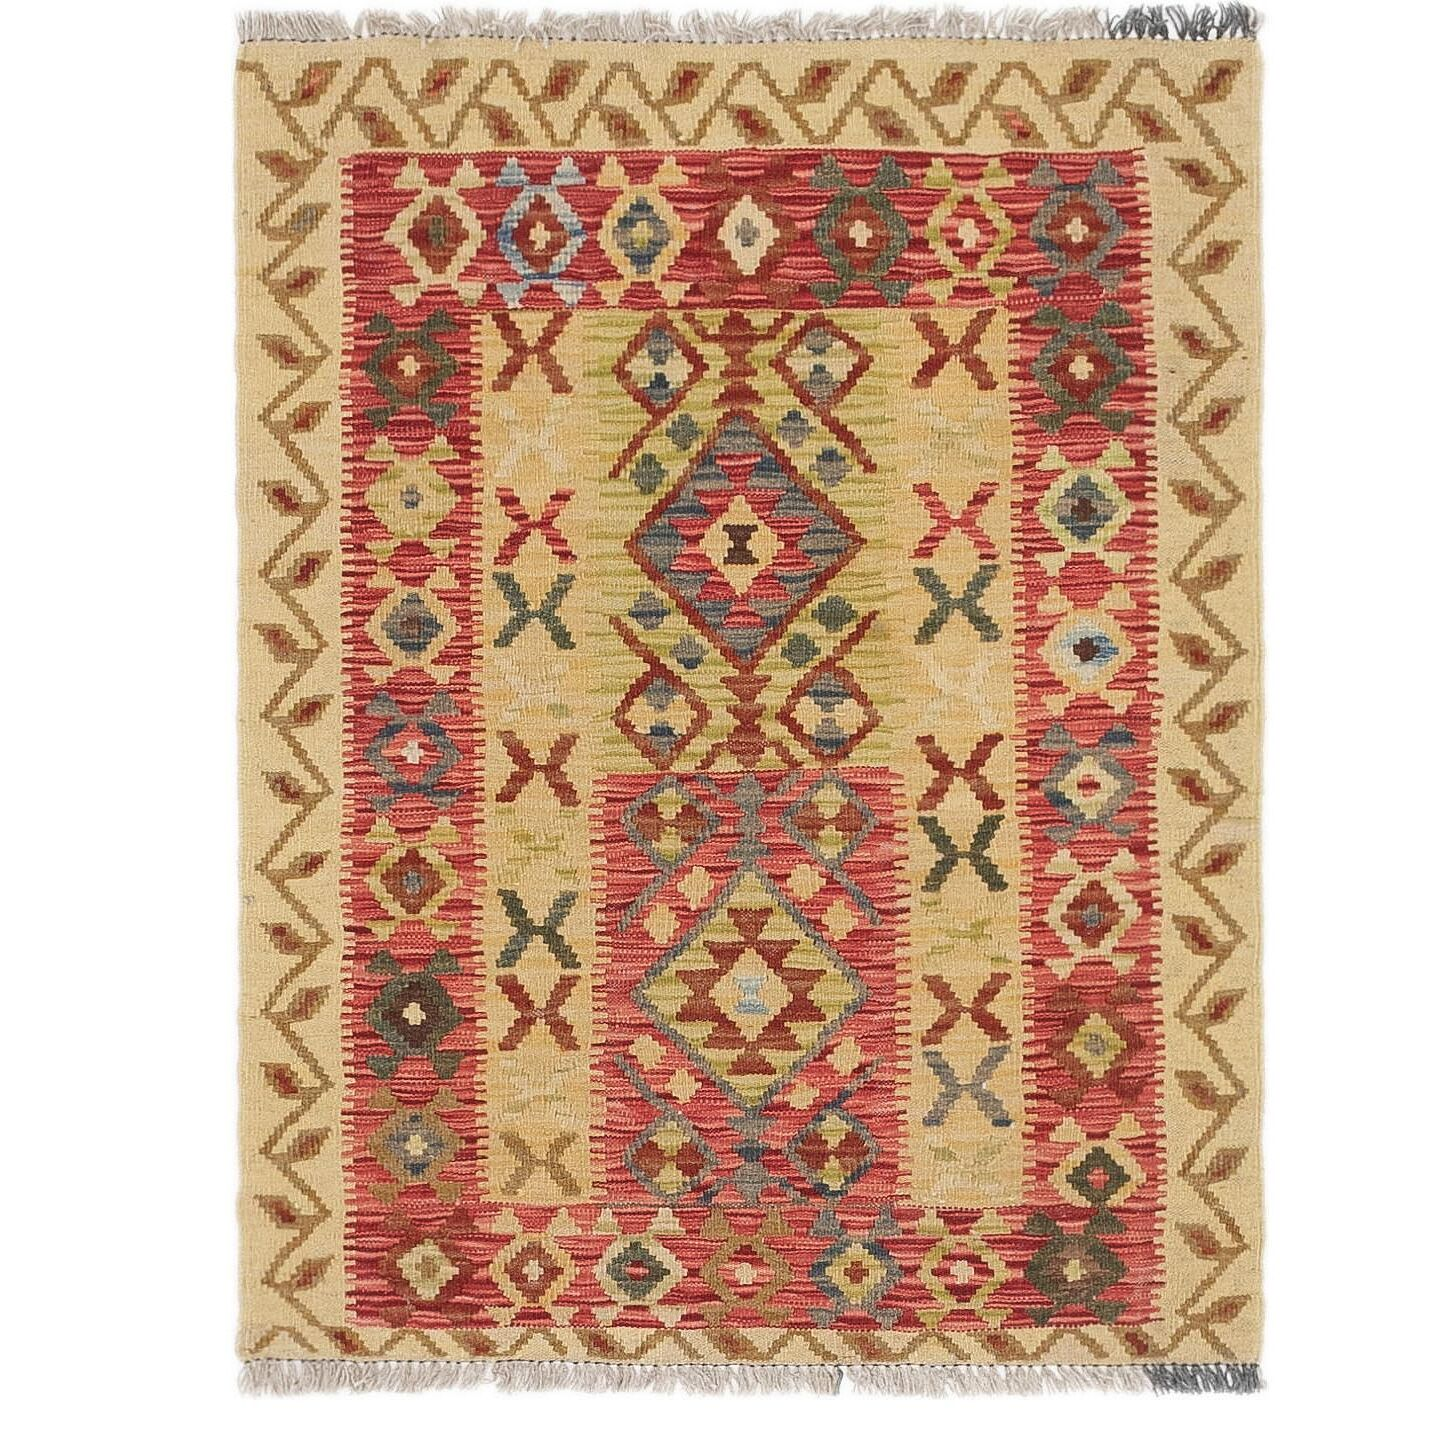 One-of-a-Kind Lorain Hand-Knotted 3' x 4' Wool Beige/Red Area Rug